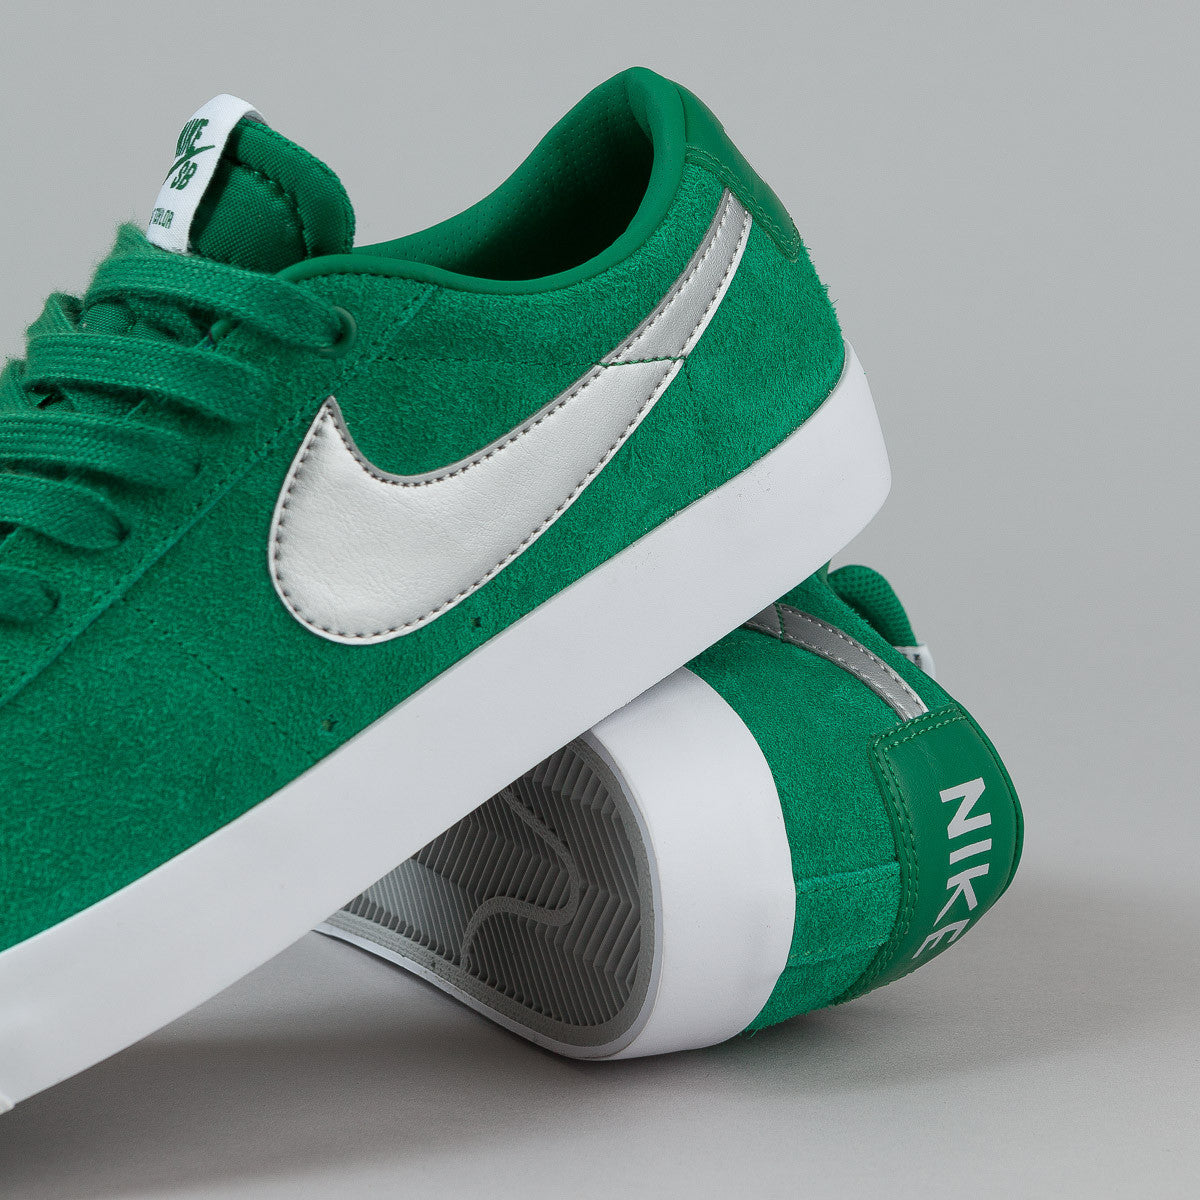 Nike SB Blazer Low GT Shoes - Pine Green / Metallic Silver - Wolf Grey - White